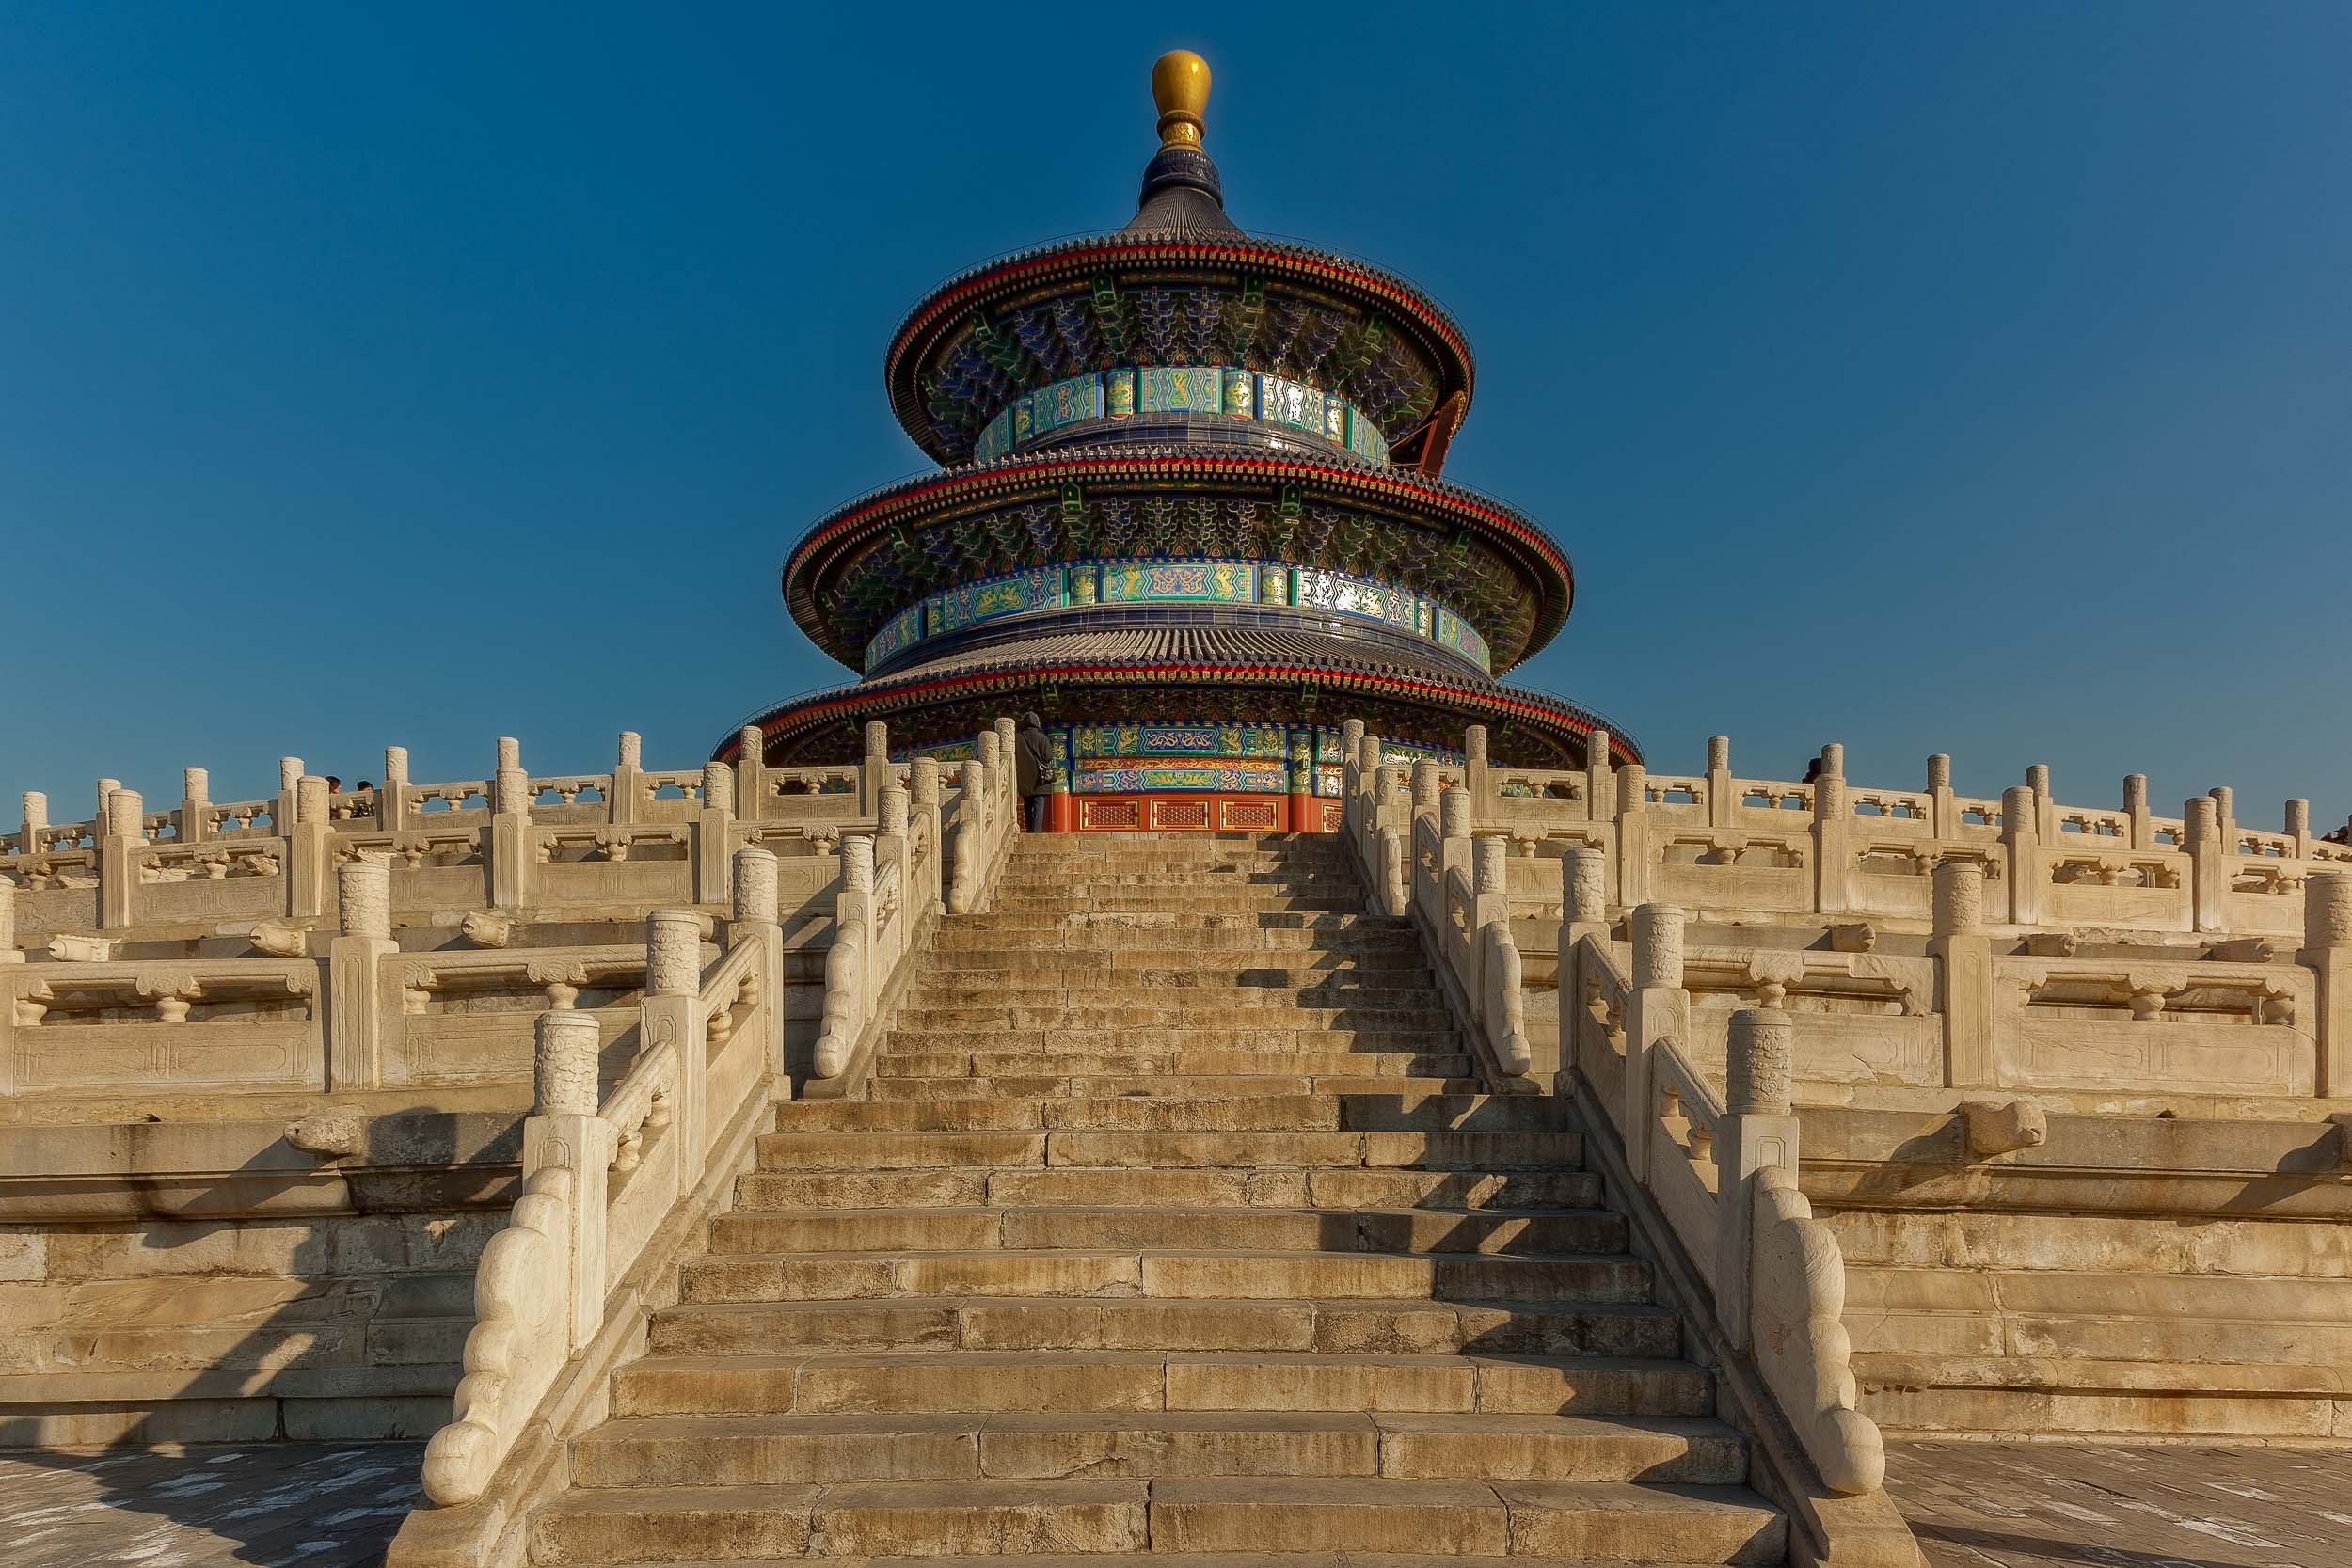 A view up a flight of stairs to a beautiful architecutral structure in the grounds of the    Temple Of Heaven    in    Beijing, China   . As you can see photographing China can include beautiful, blue skies.